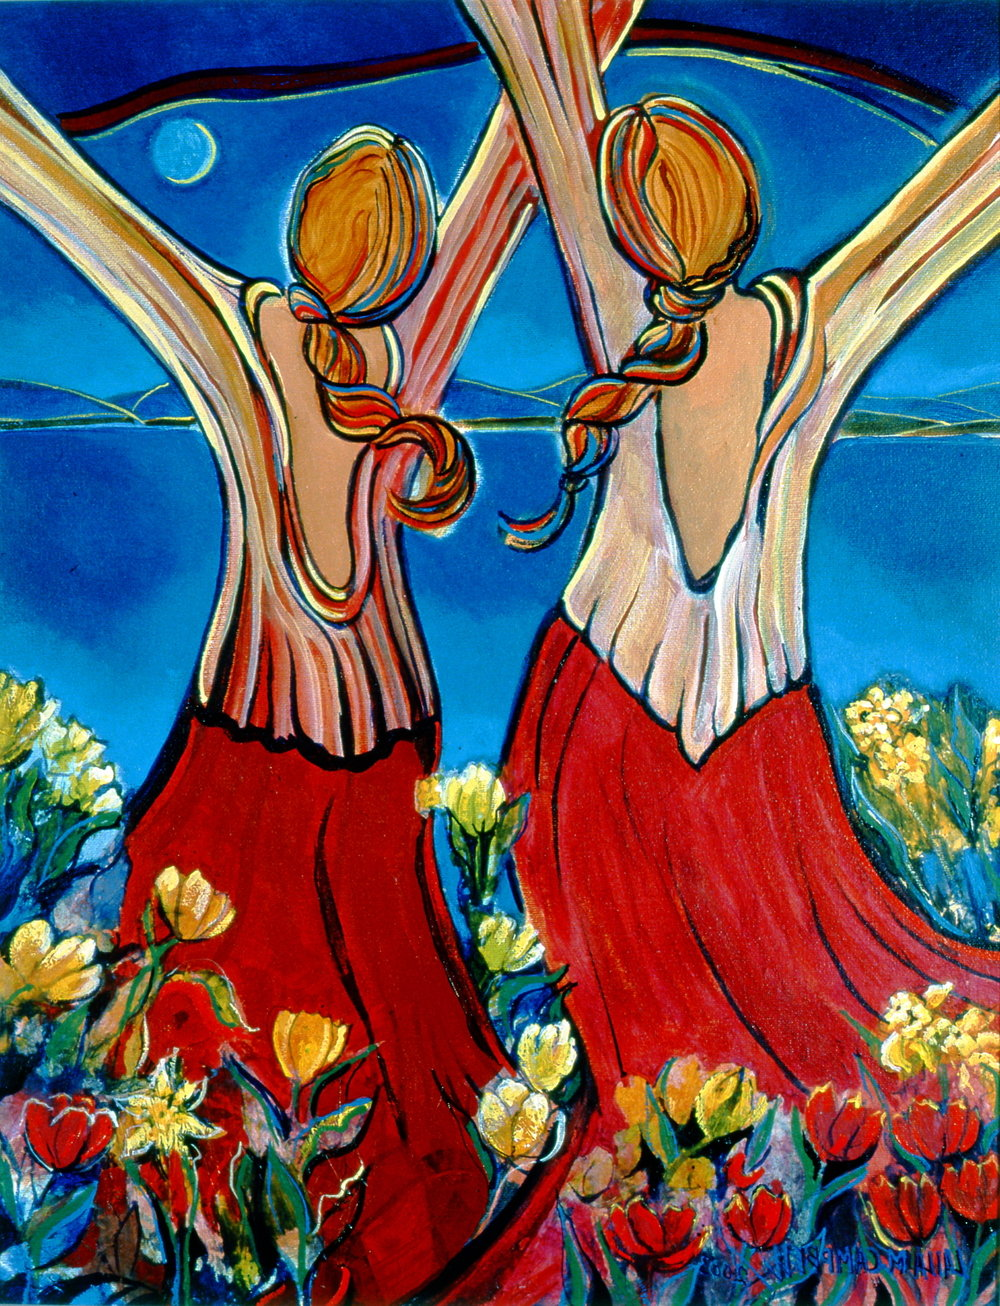 Spring Dancers, 2003, Laila M. Campbell, acrylic and tissue paper on canvas, 45 cm x 35 cm, 2003.01.01, gift of the artist